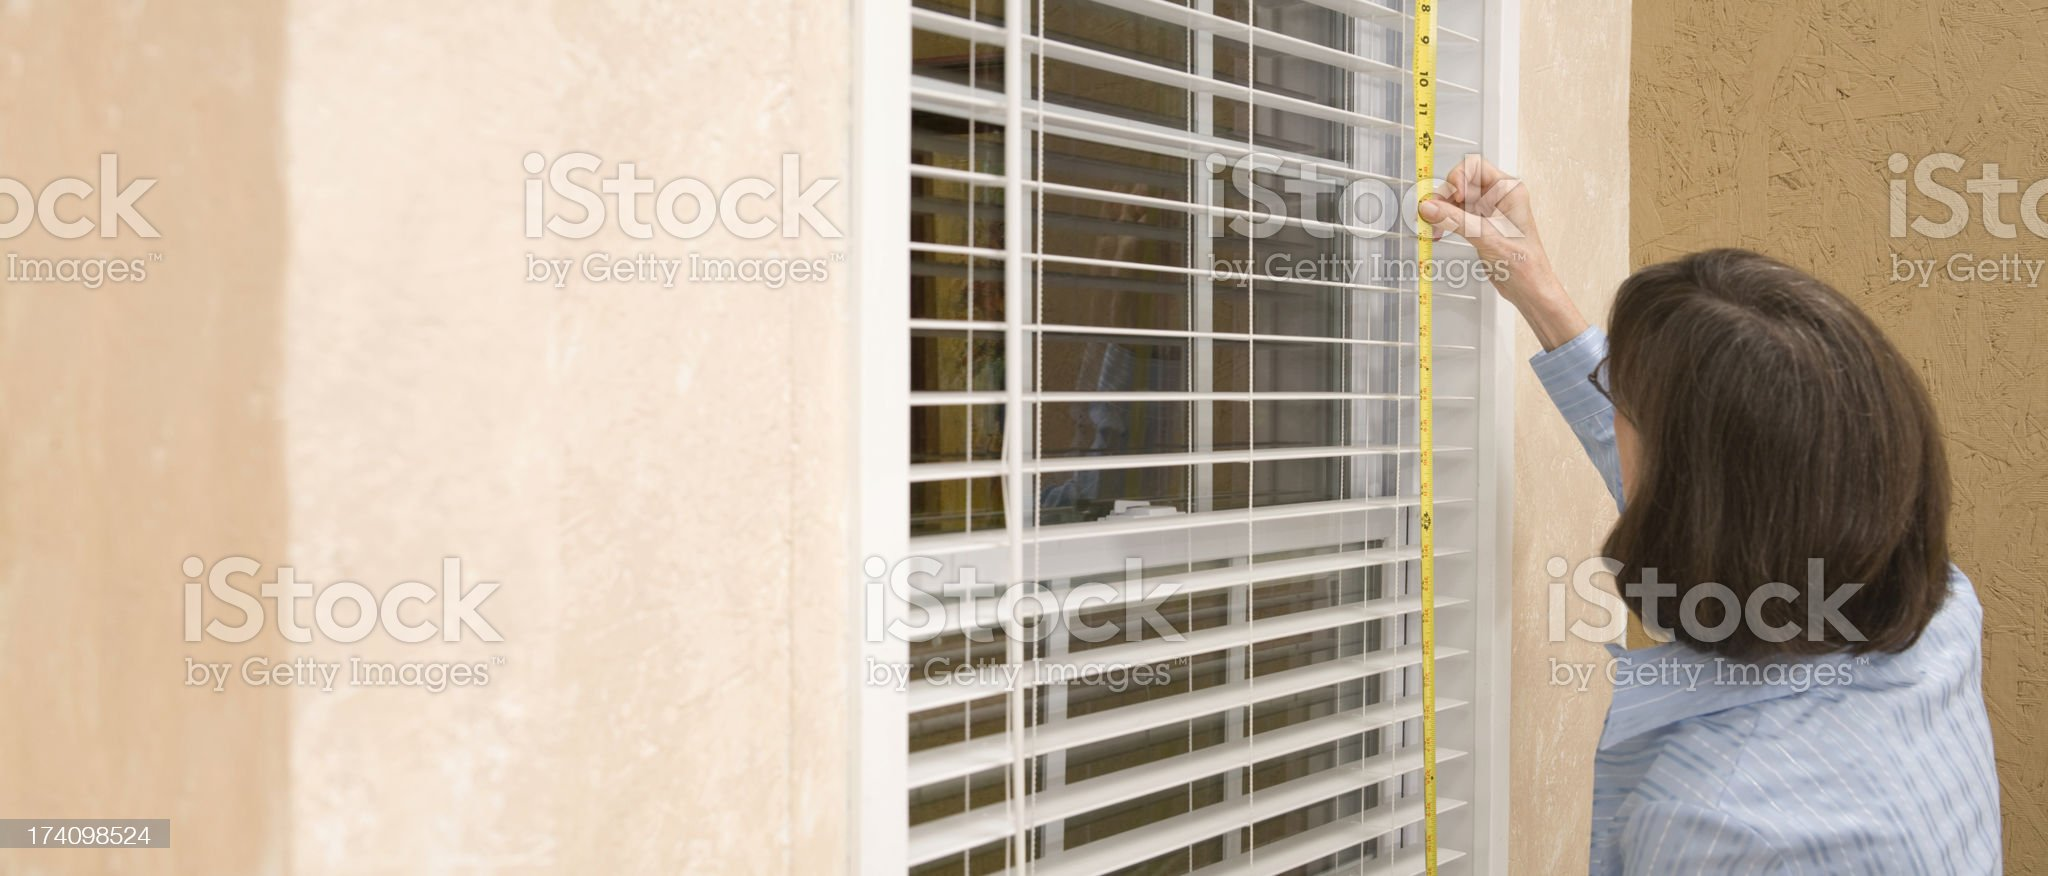 Construction: Woman measures windows for new window coverings. royalty-free stock photo